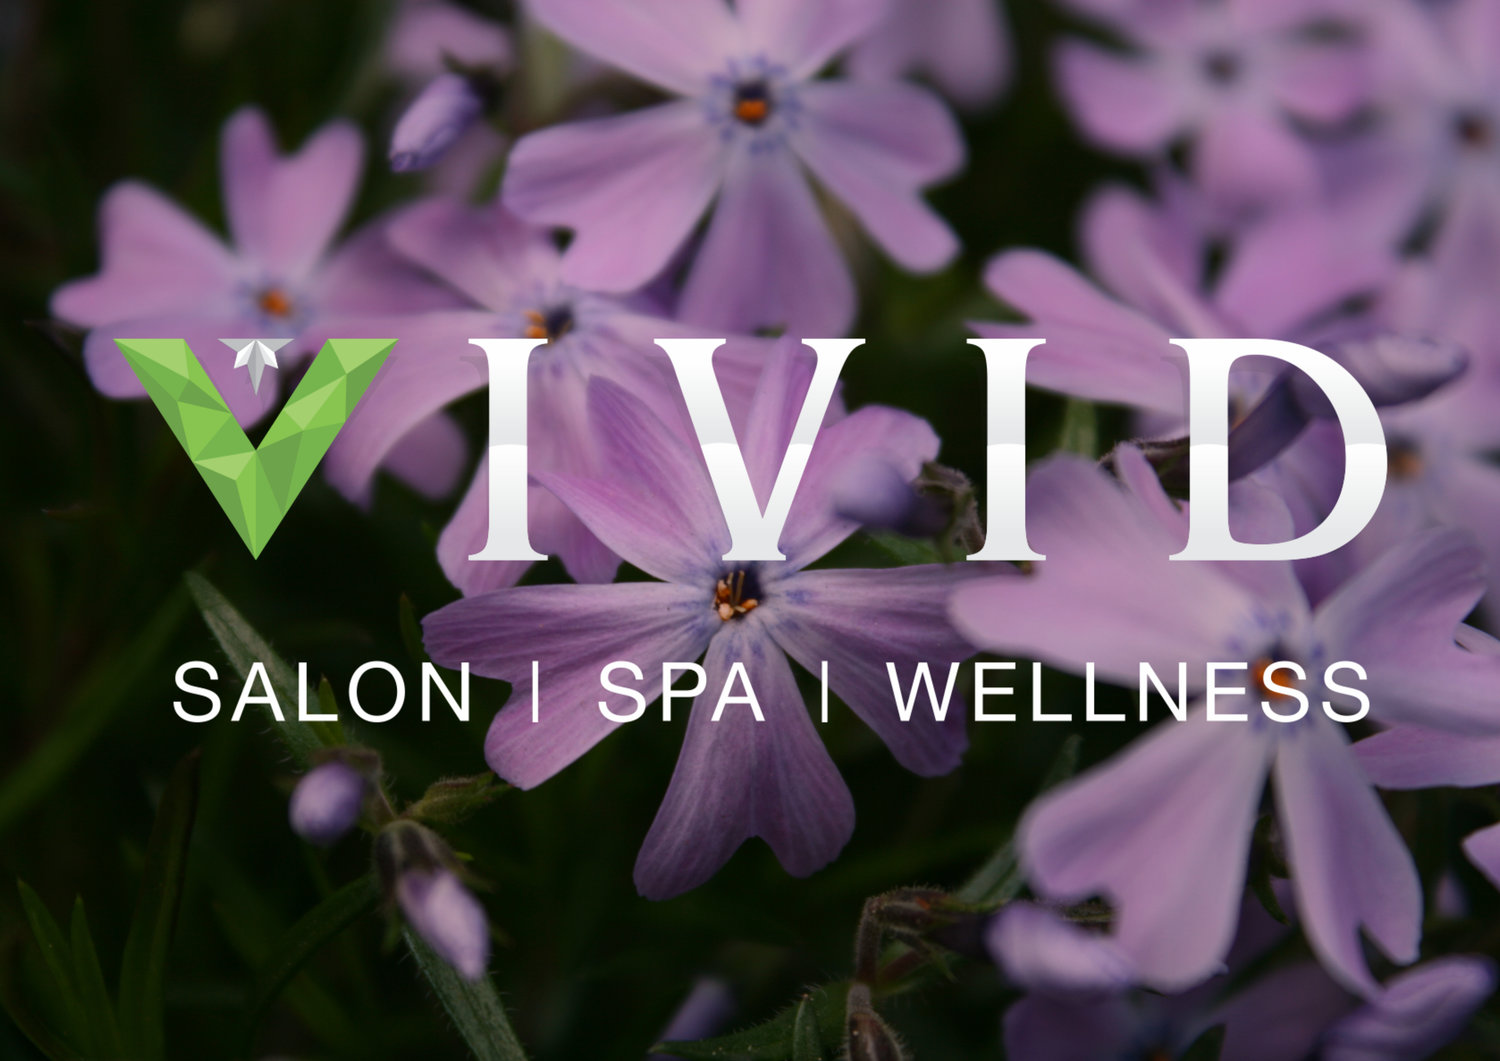 VIVID Salon|Spa|Wellness